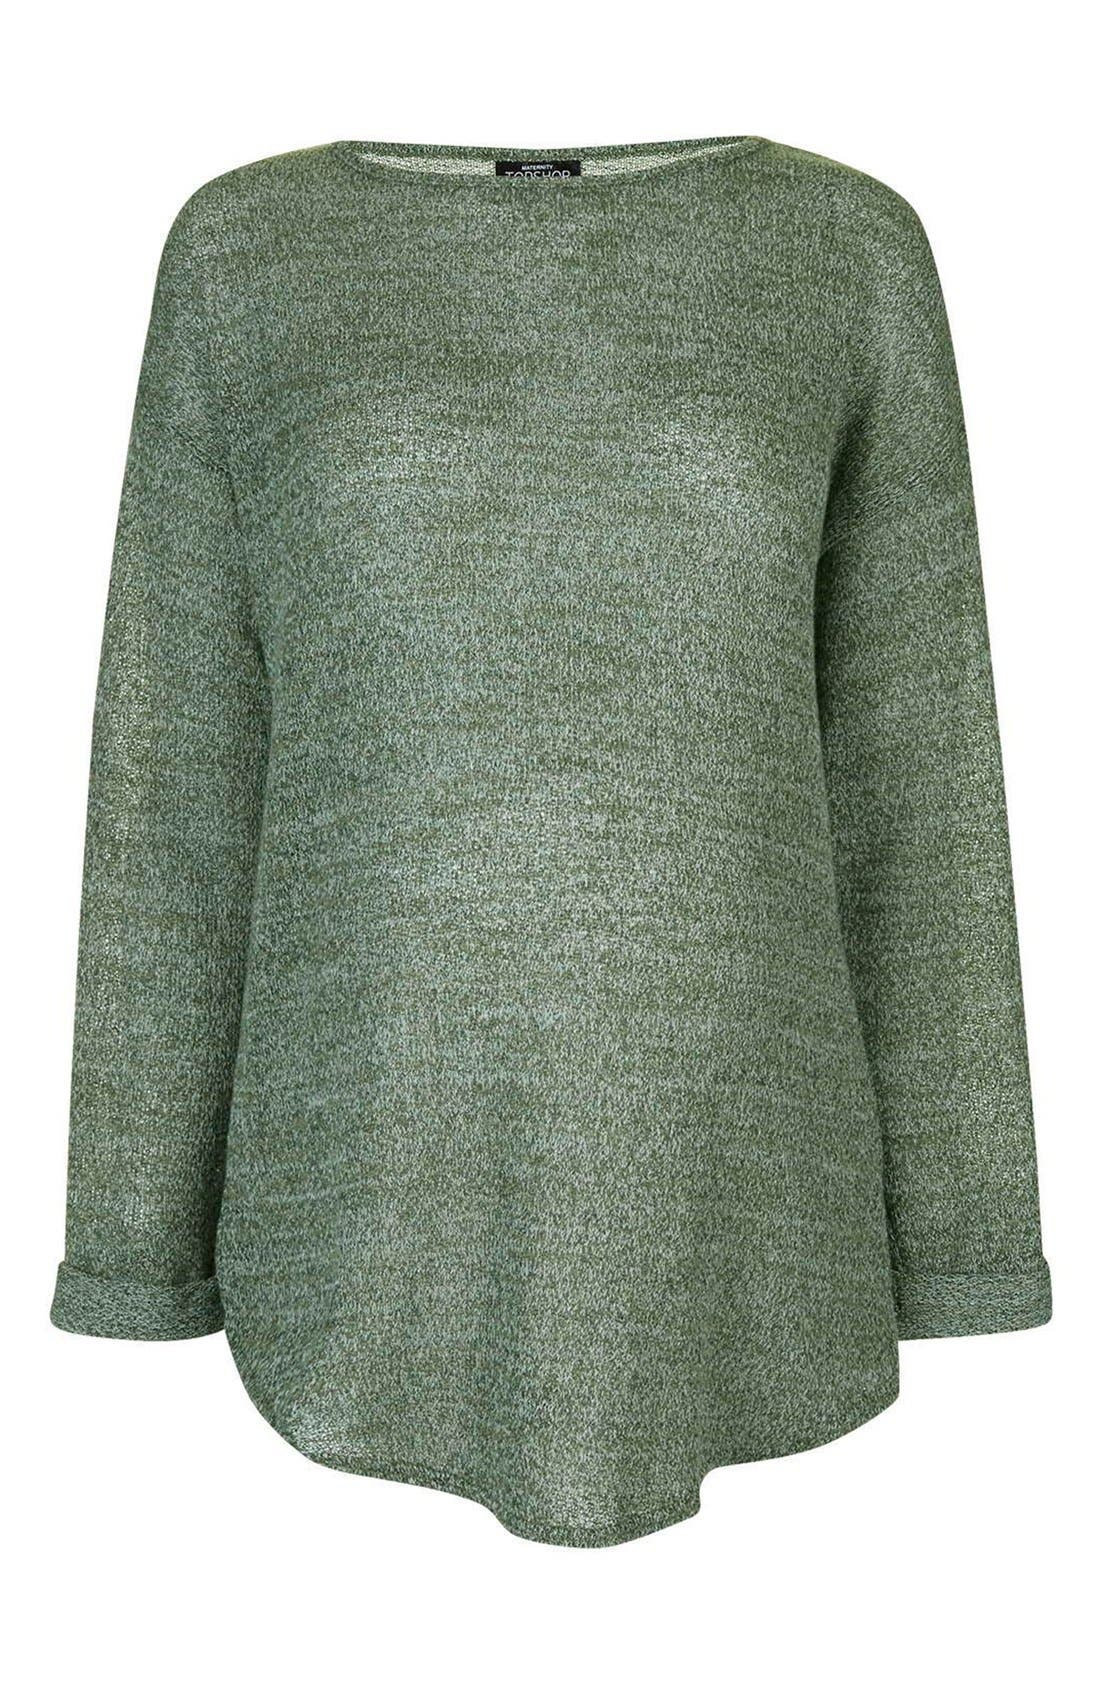 Alternate Image 1 Selected - Topshop Long Sleeve Knit Maternity Top